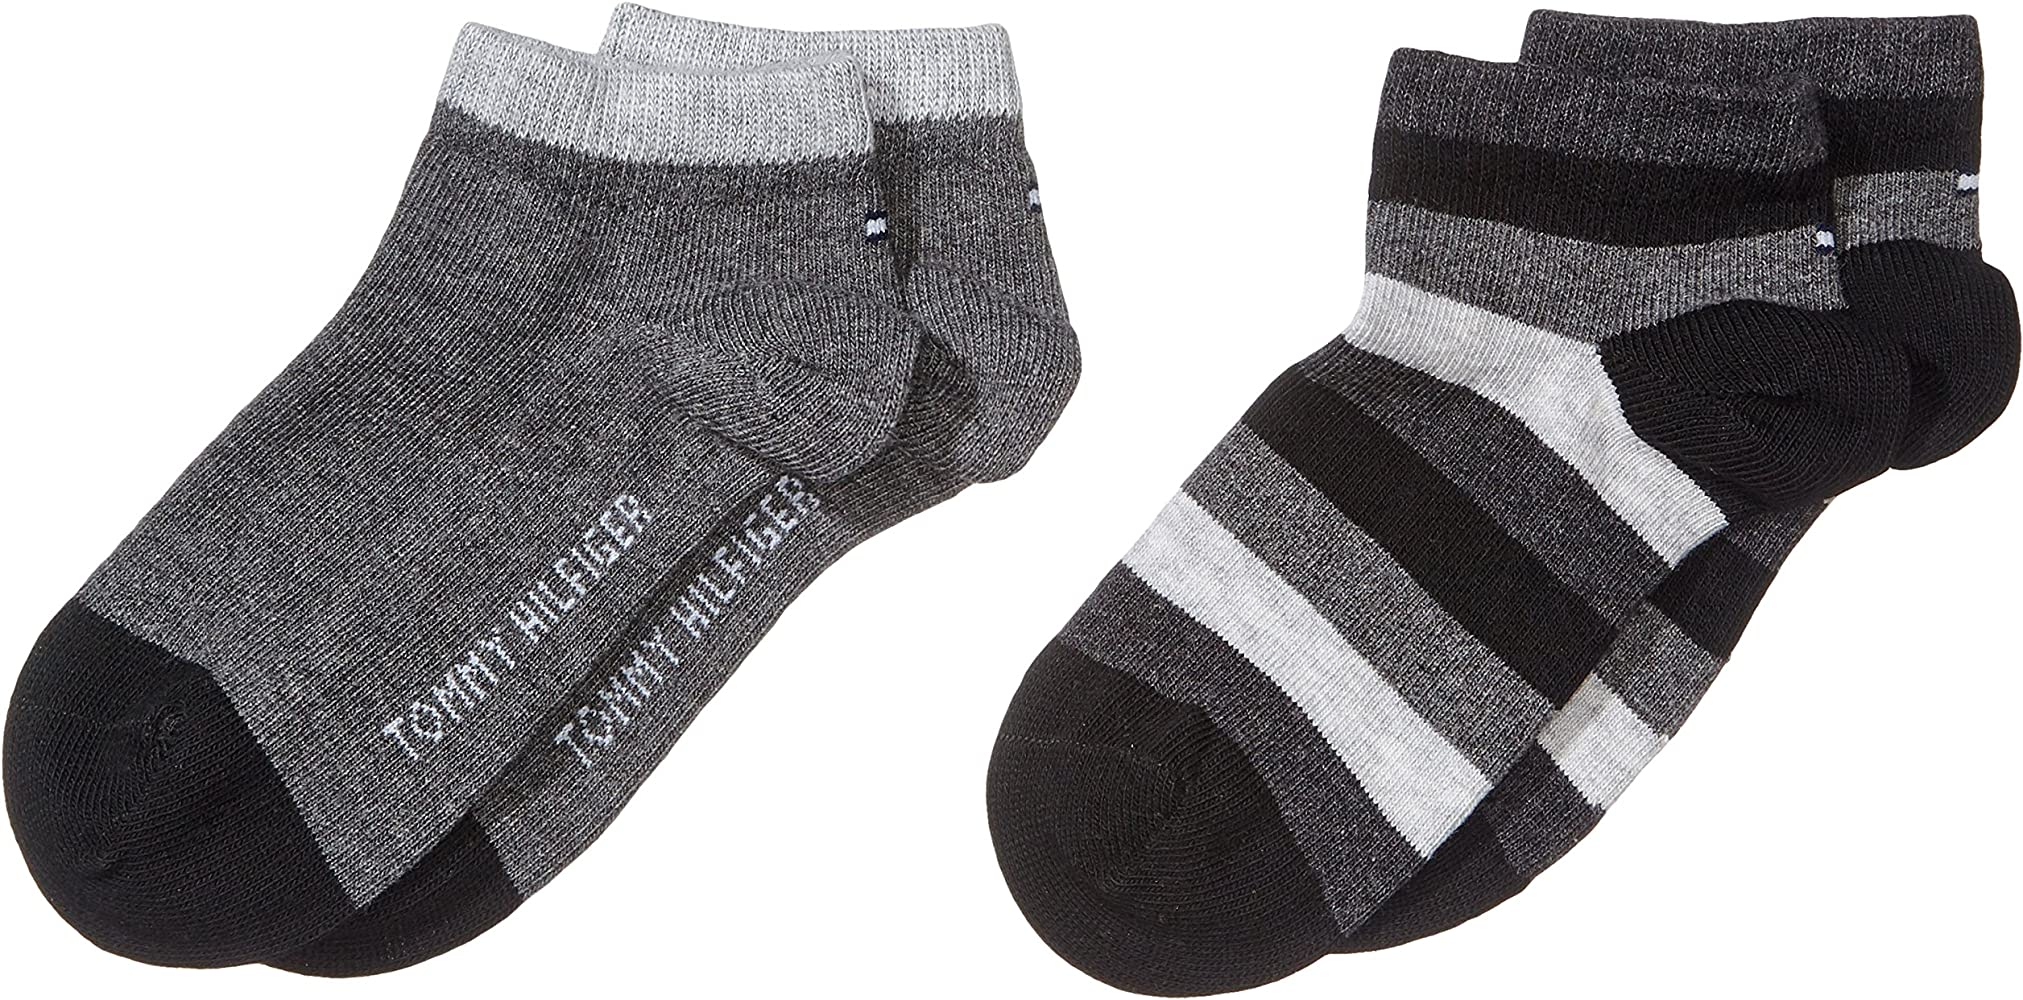 Boys' Socks (Pack of 2)